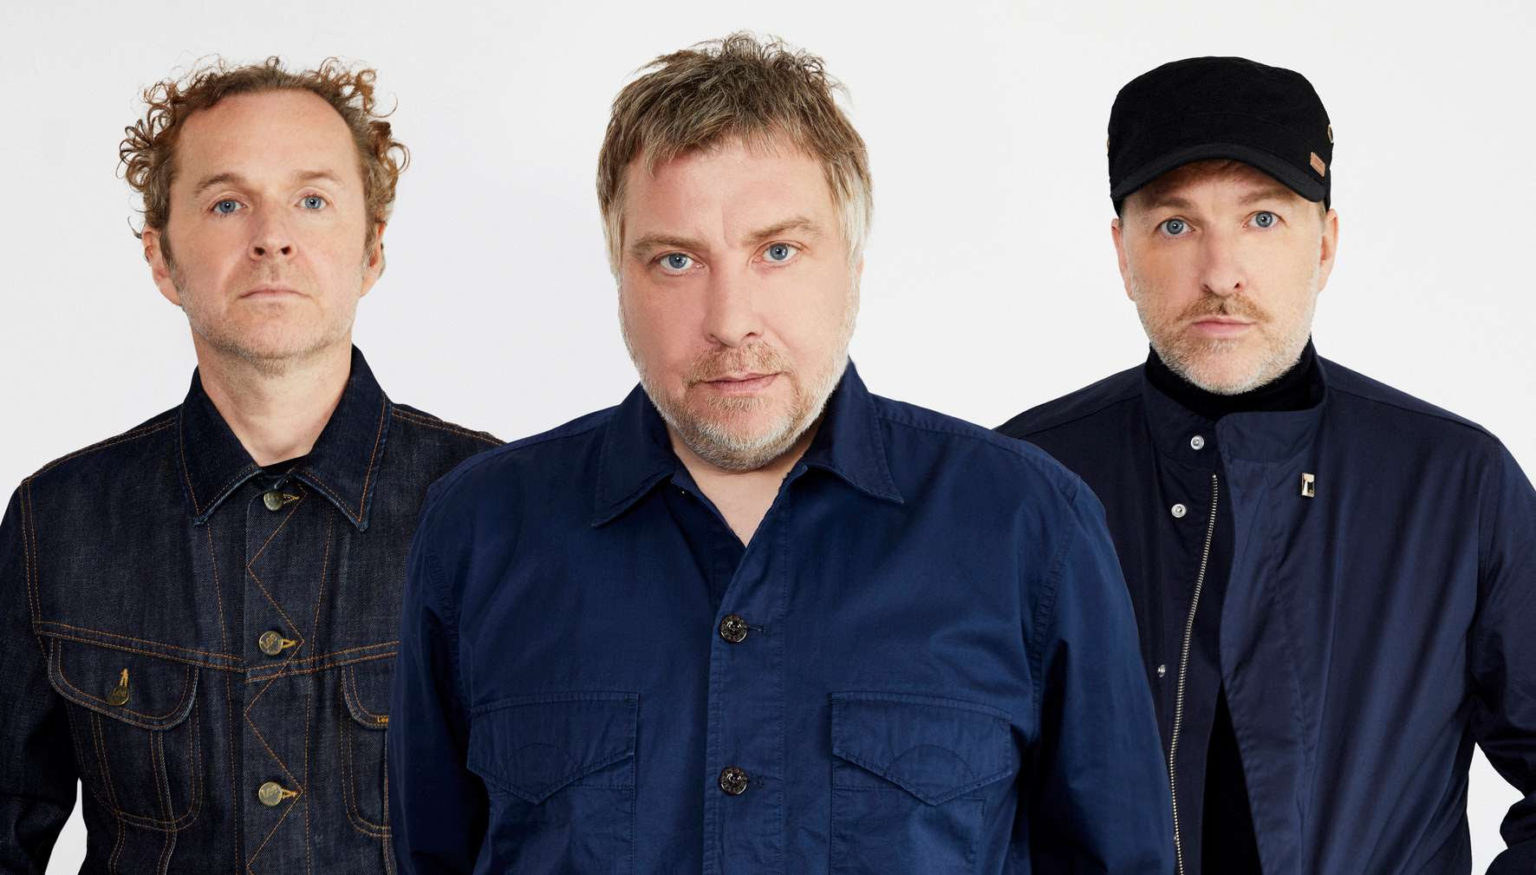 Doves have announced that their fifth album entitled, The Universal Want, will be out September 11th